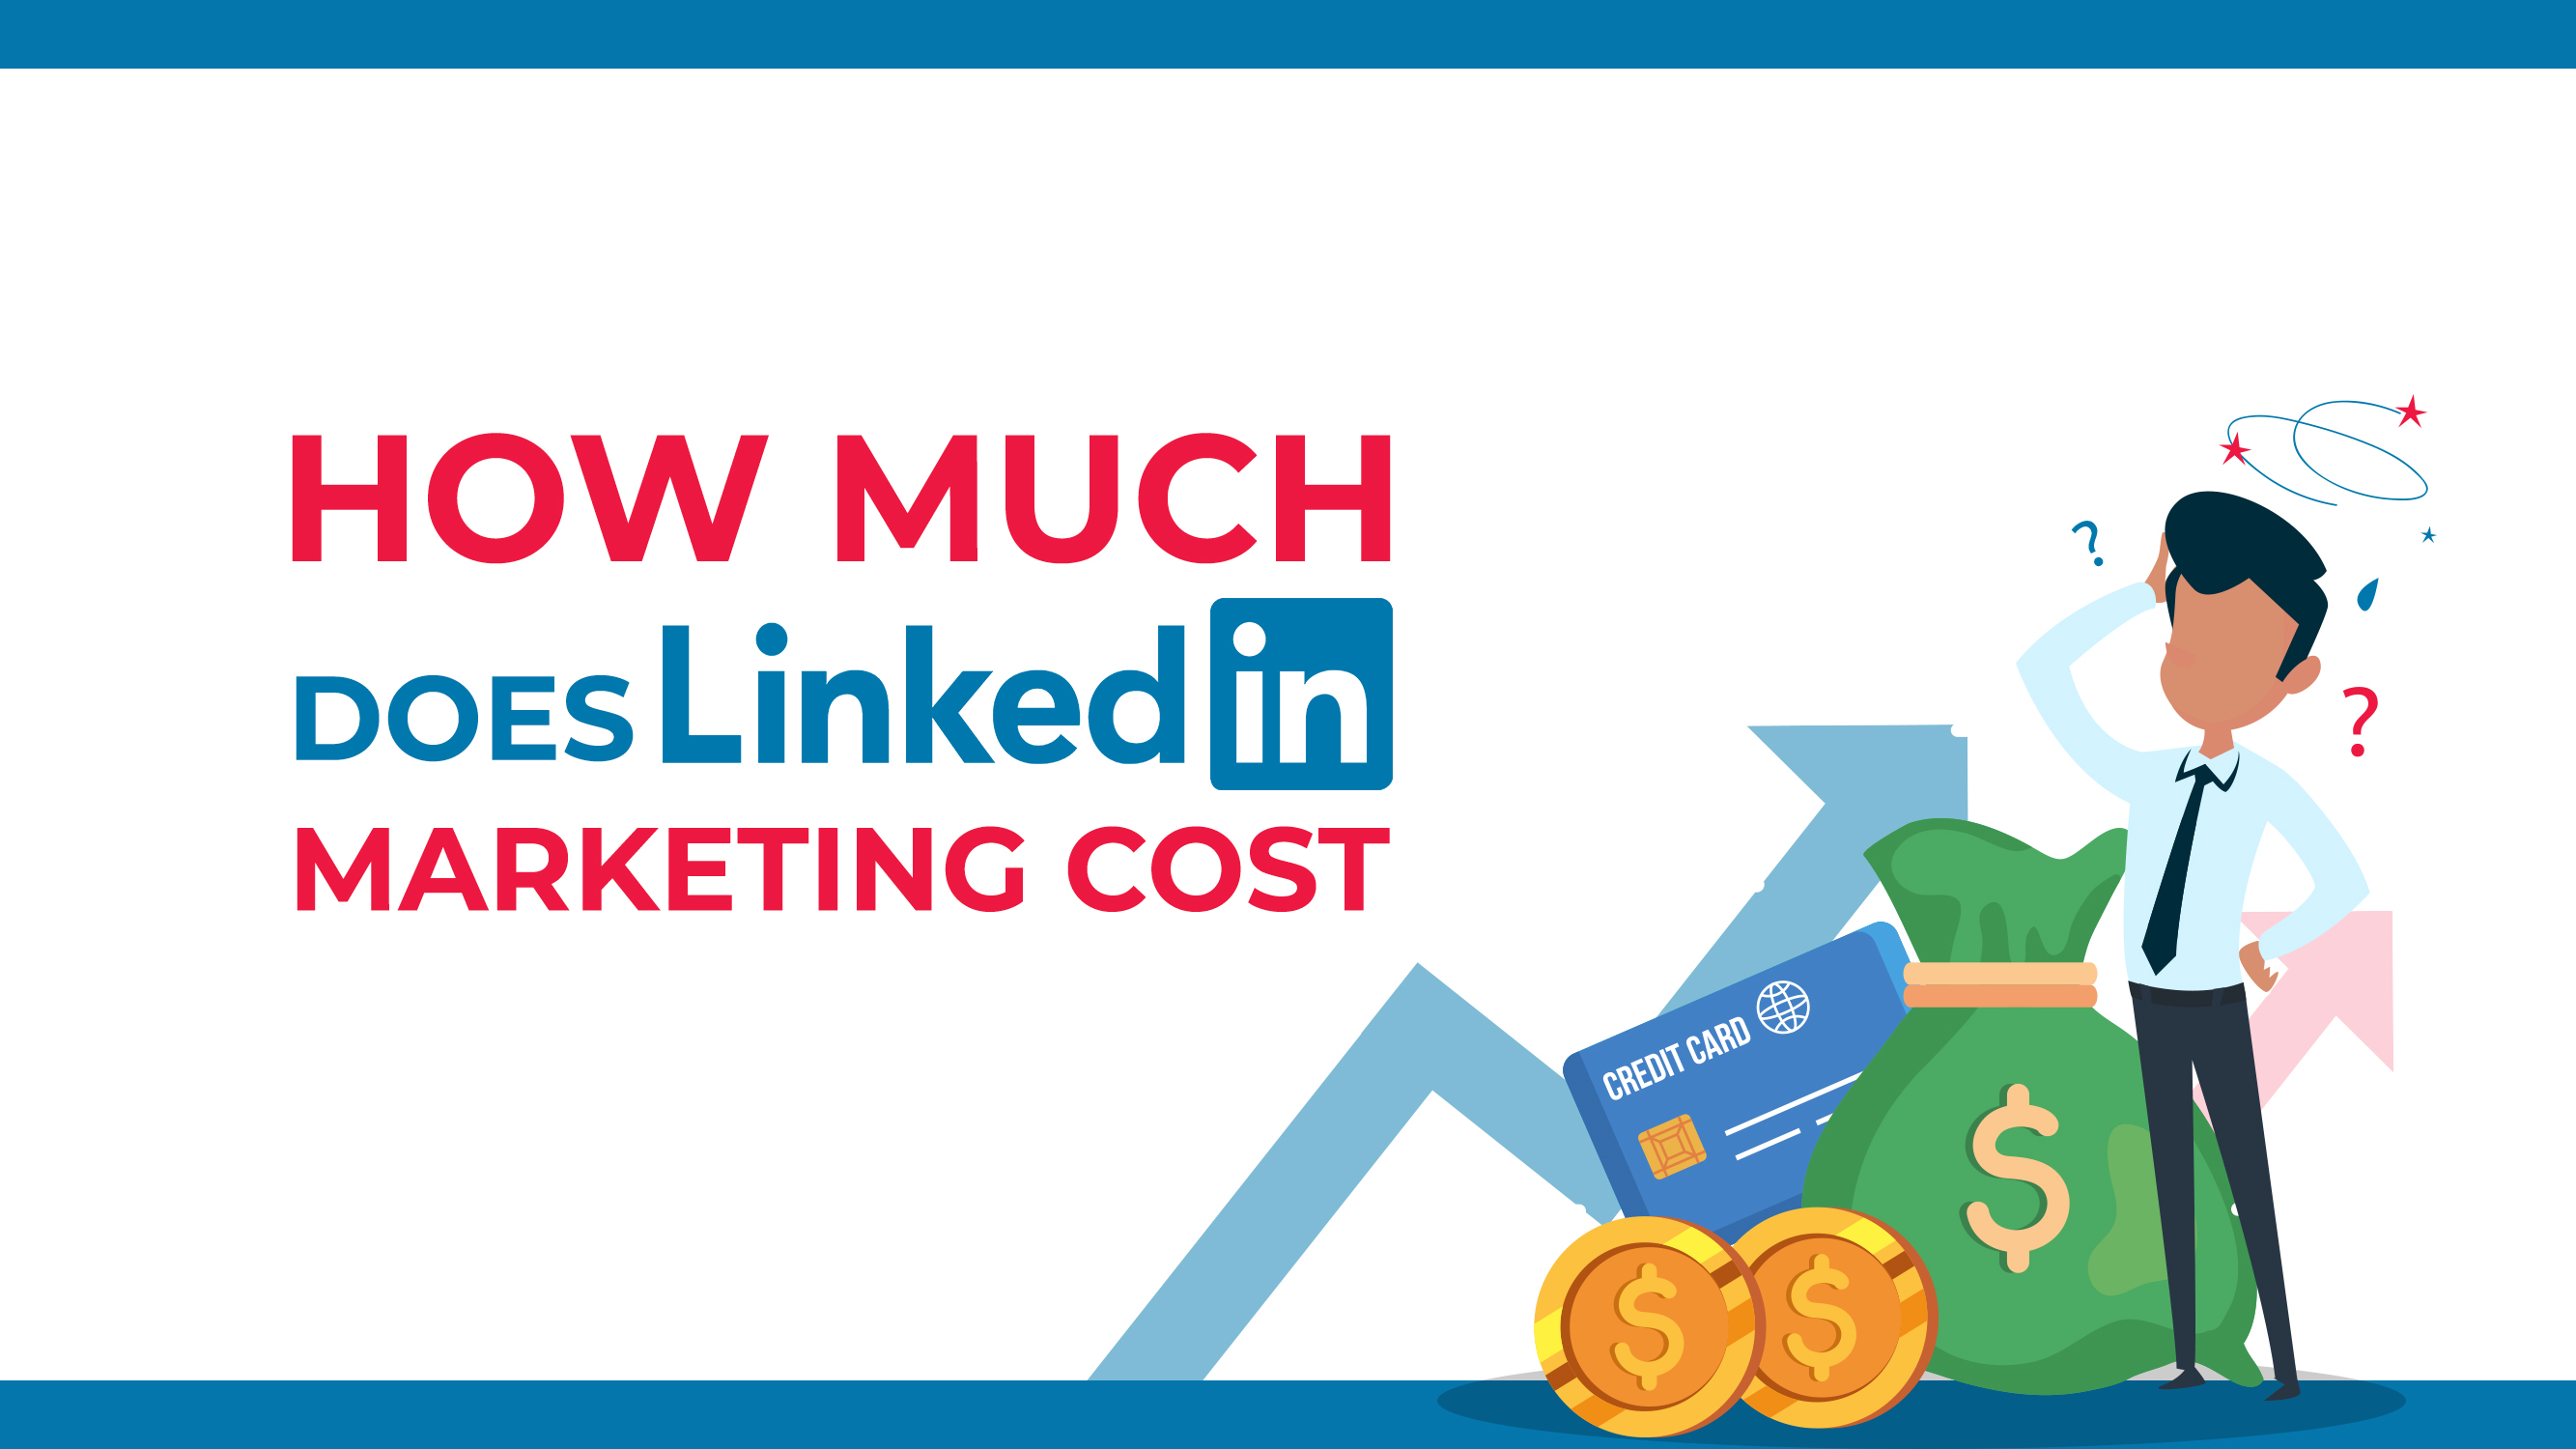 Quanto custa o LinkedIn Marketing?